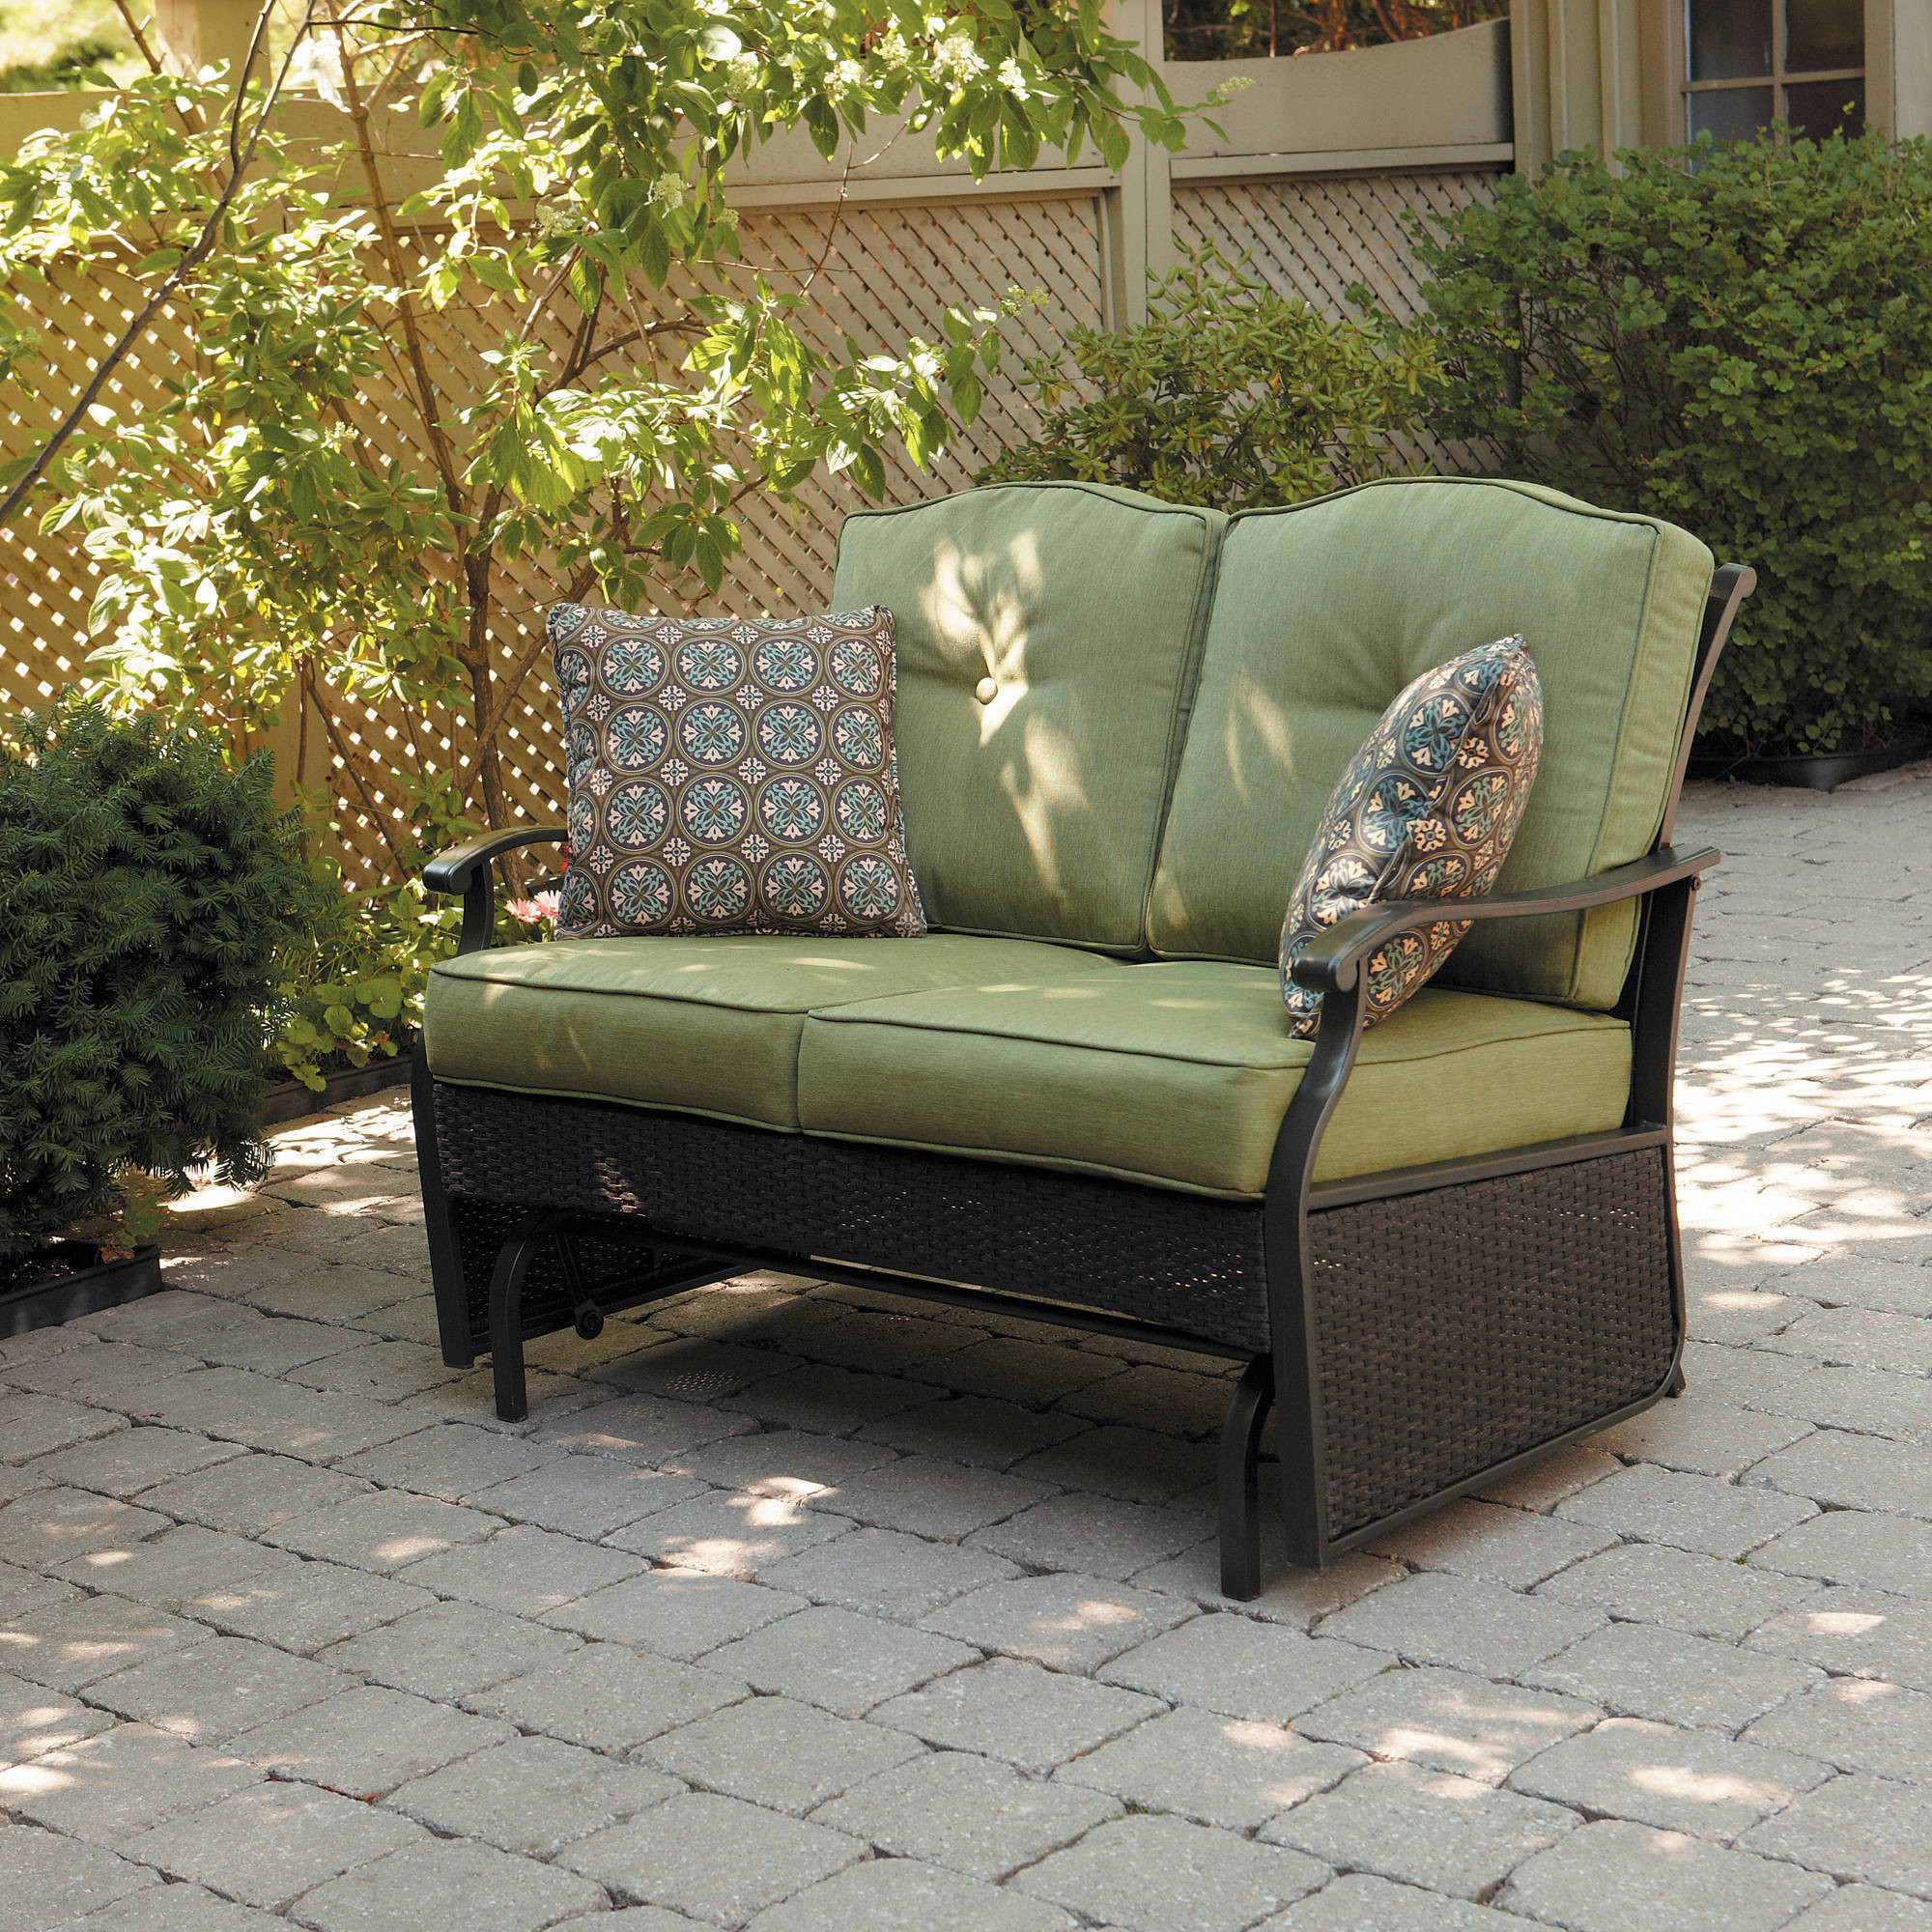 Best ideas about Outdoor Chairs Walmart . Save or Pin Patio Chairs & Stools Walmart Now.